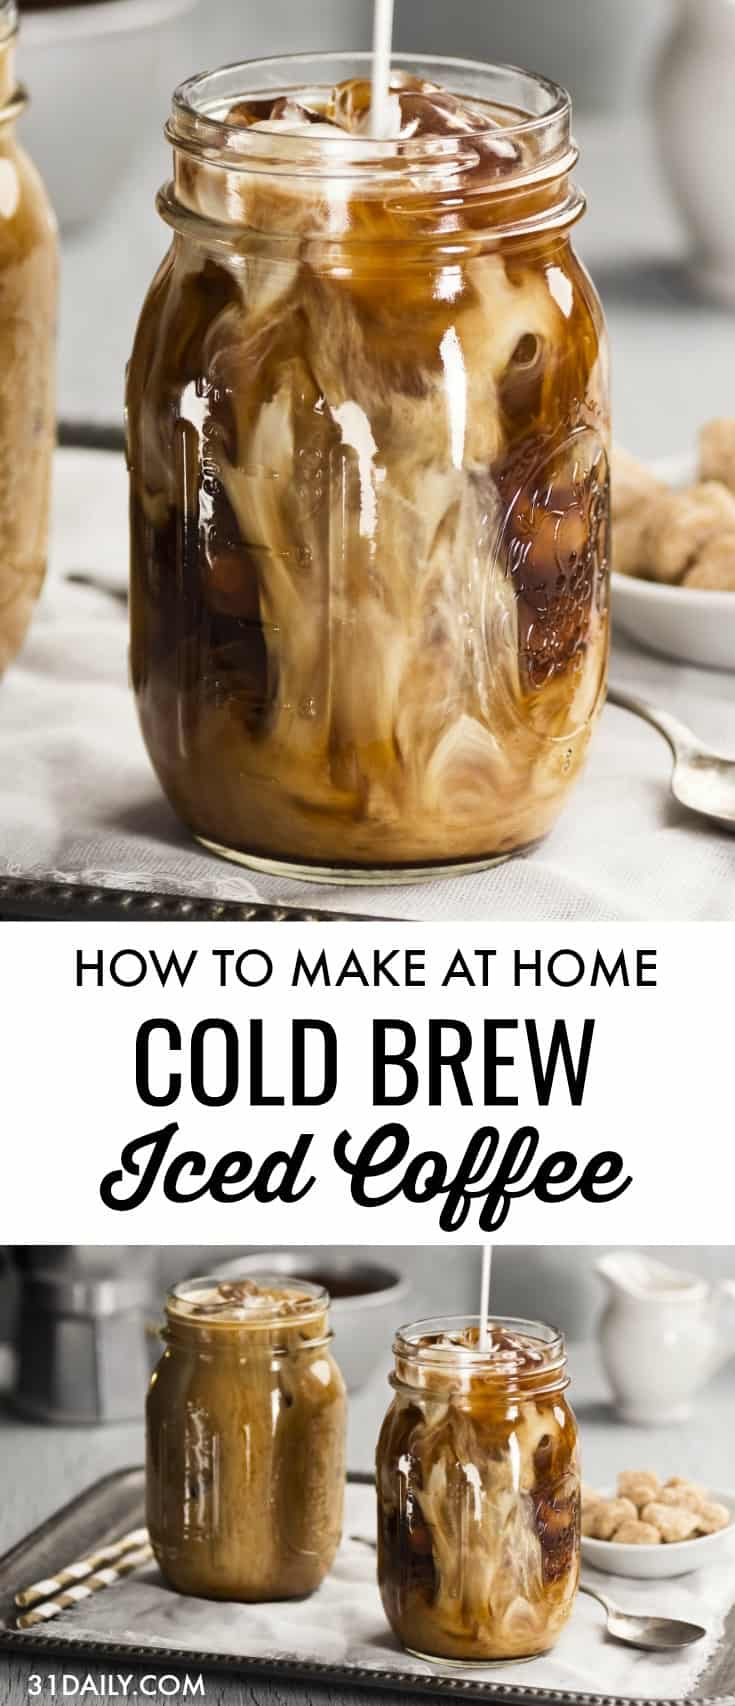 How to Make Homemade Cold Brew Coffee | 31Daily.com